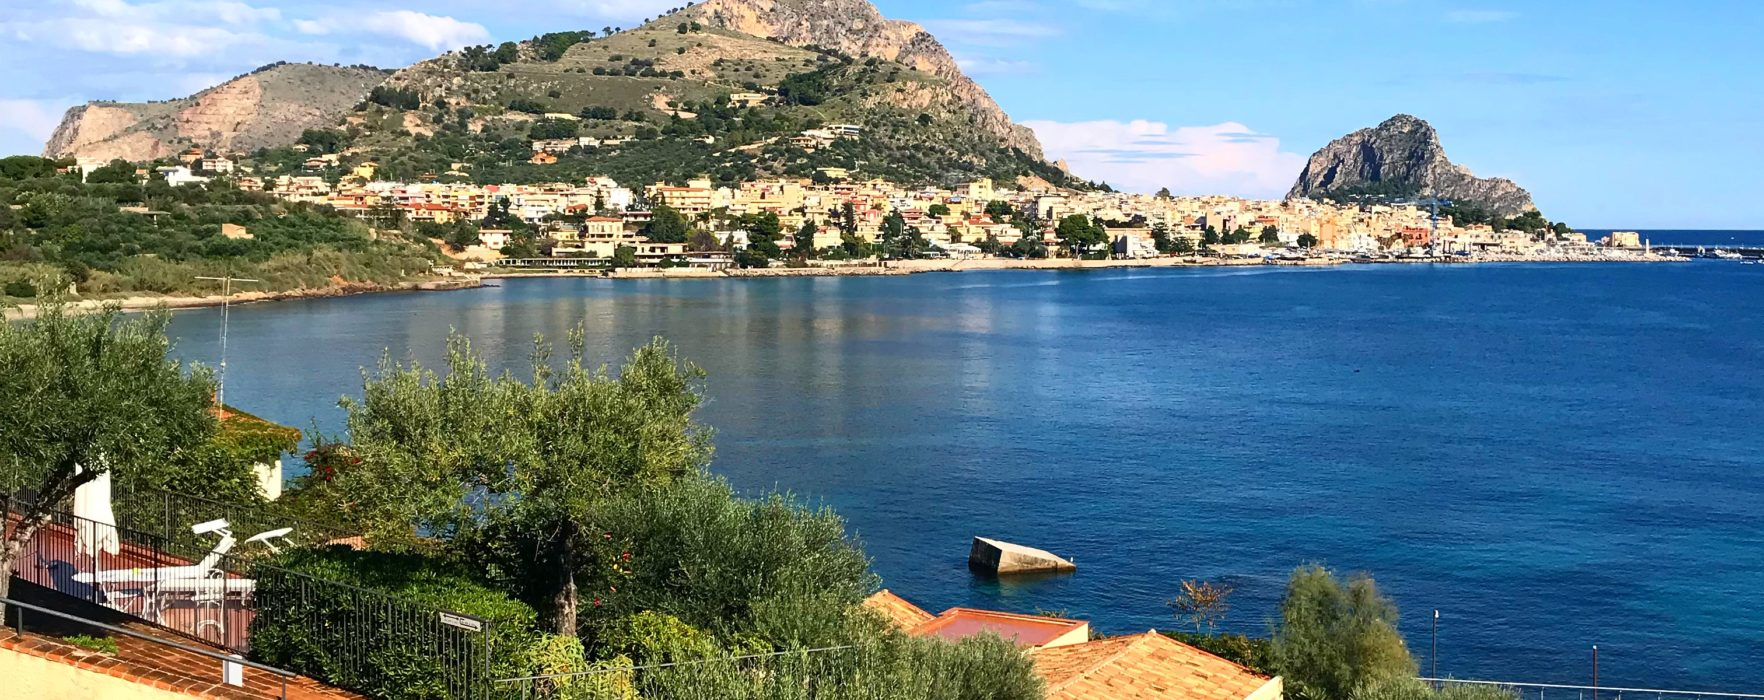 Why breathtaking Sicily should be your next oasis break